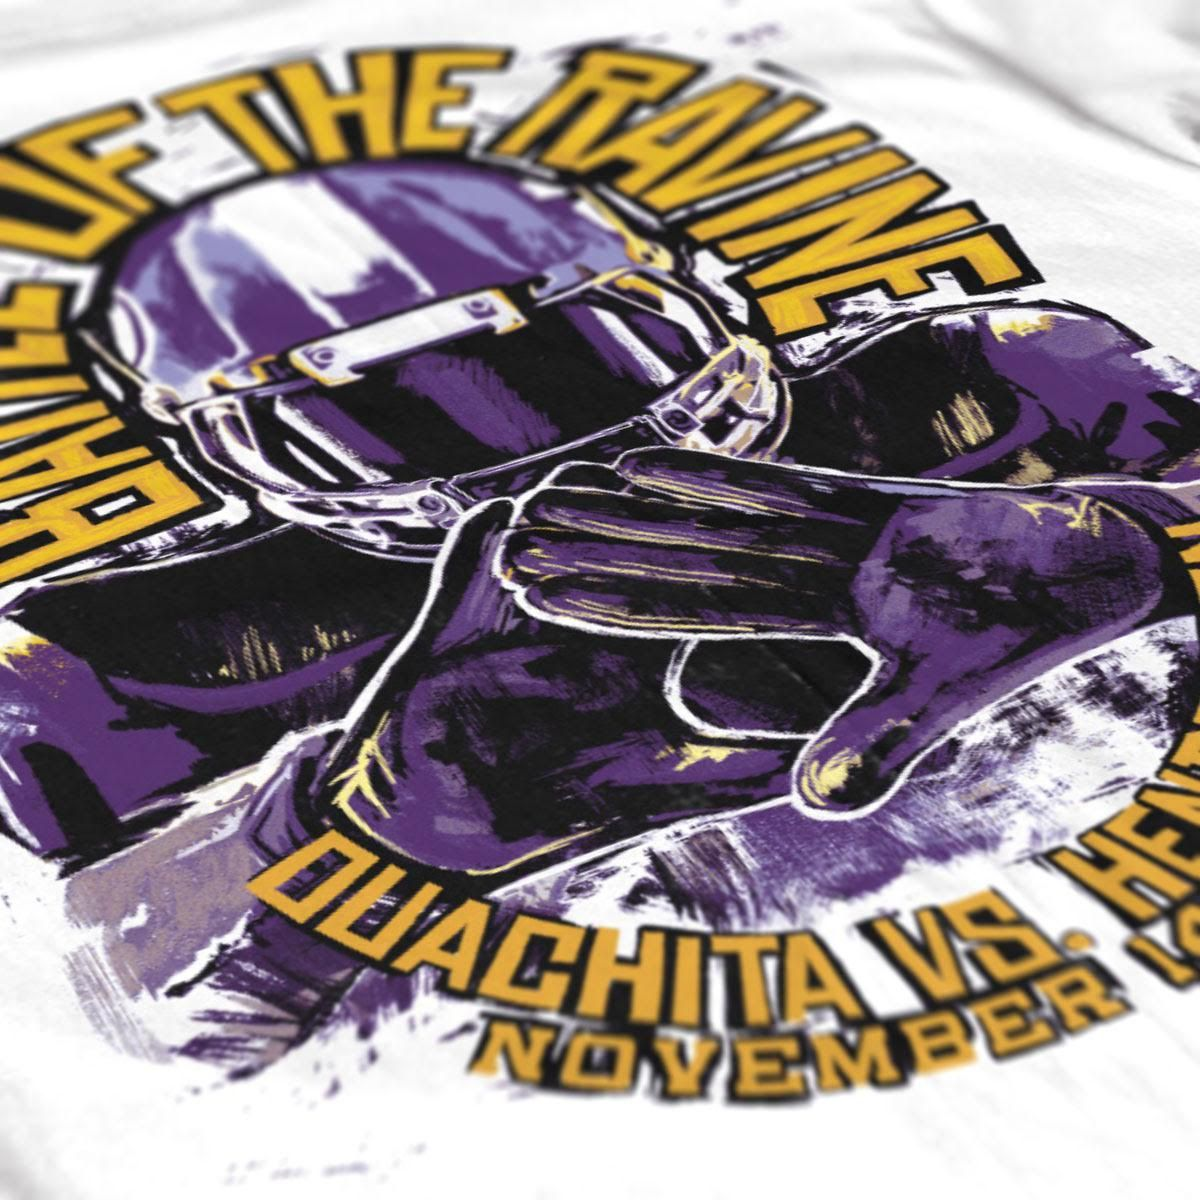 Battle of the Ravine - Ouachita Baptist - Gameday - Rivalry - Check us out at B-Unlimited.com